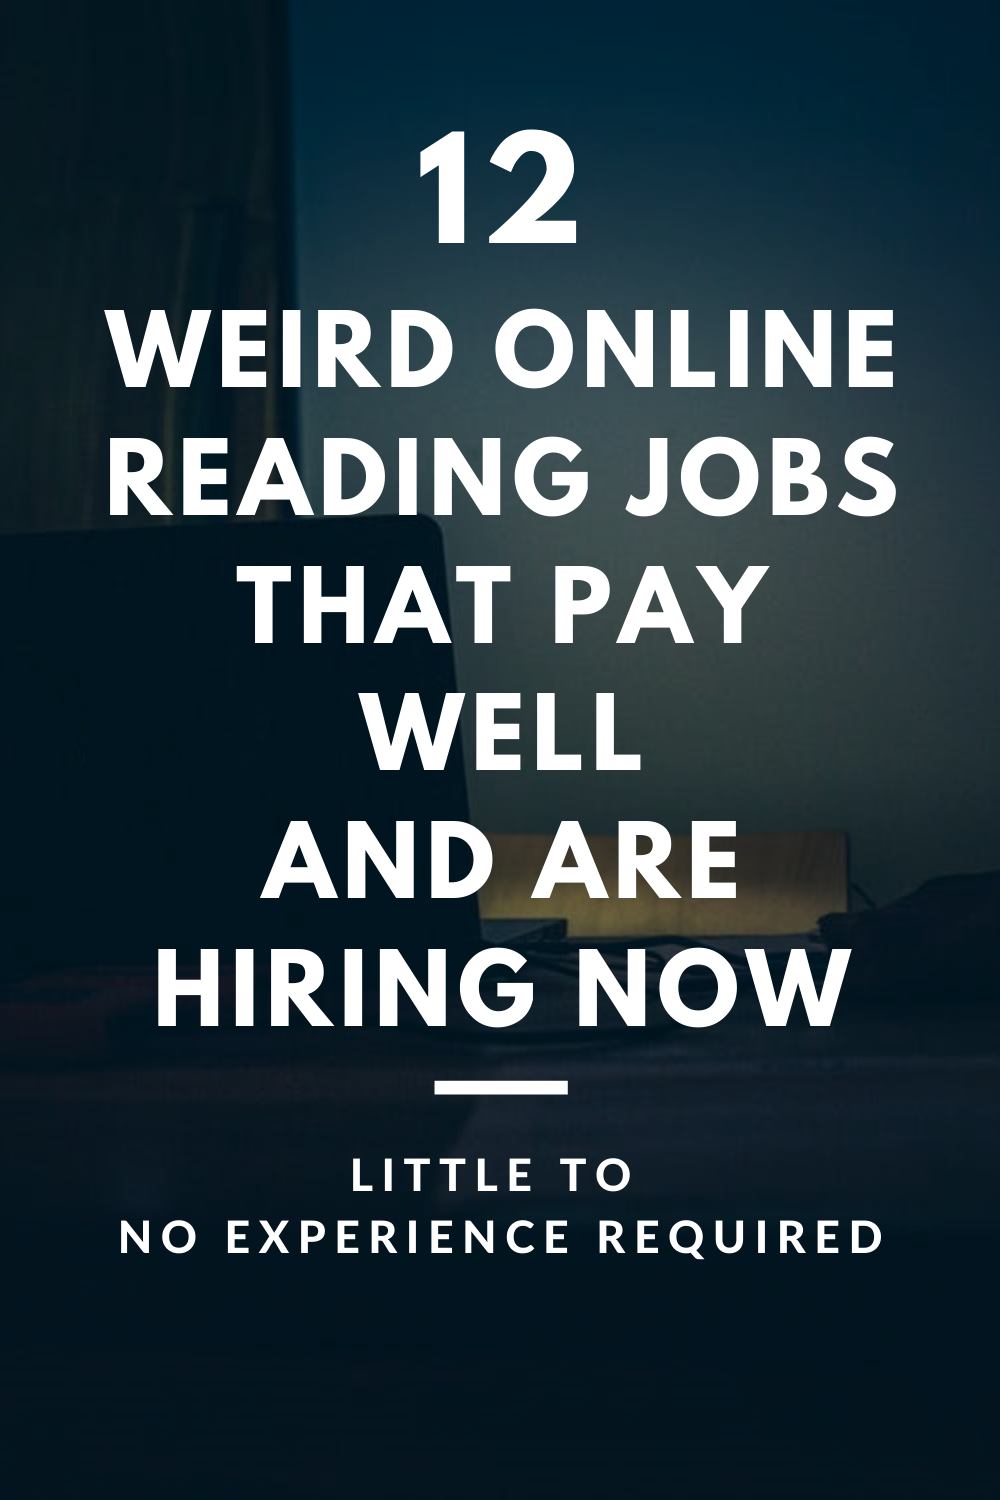 12 weird online reading jobs that pay well and are